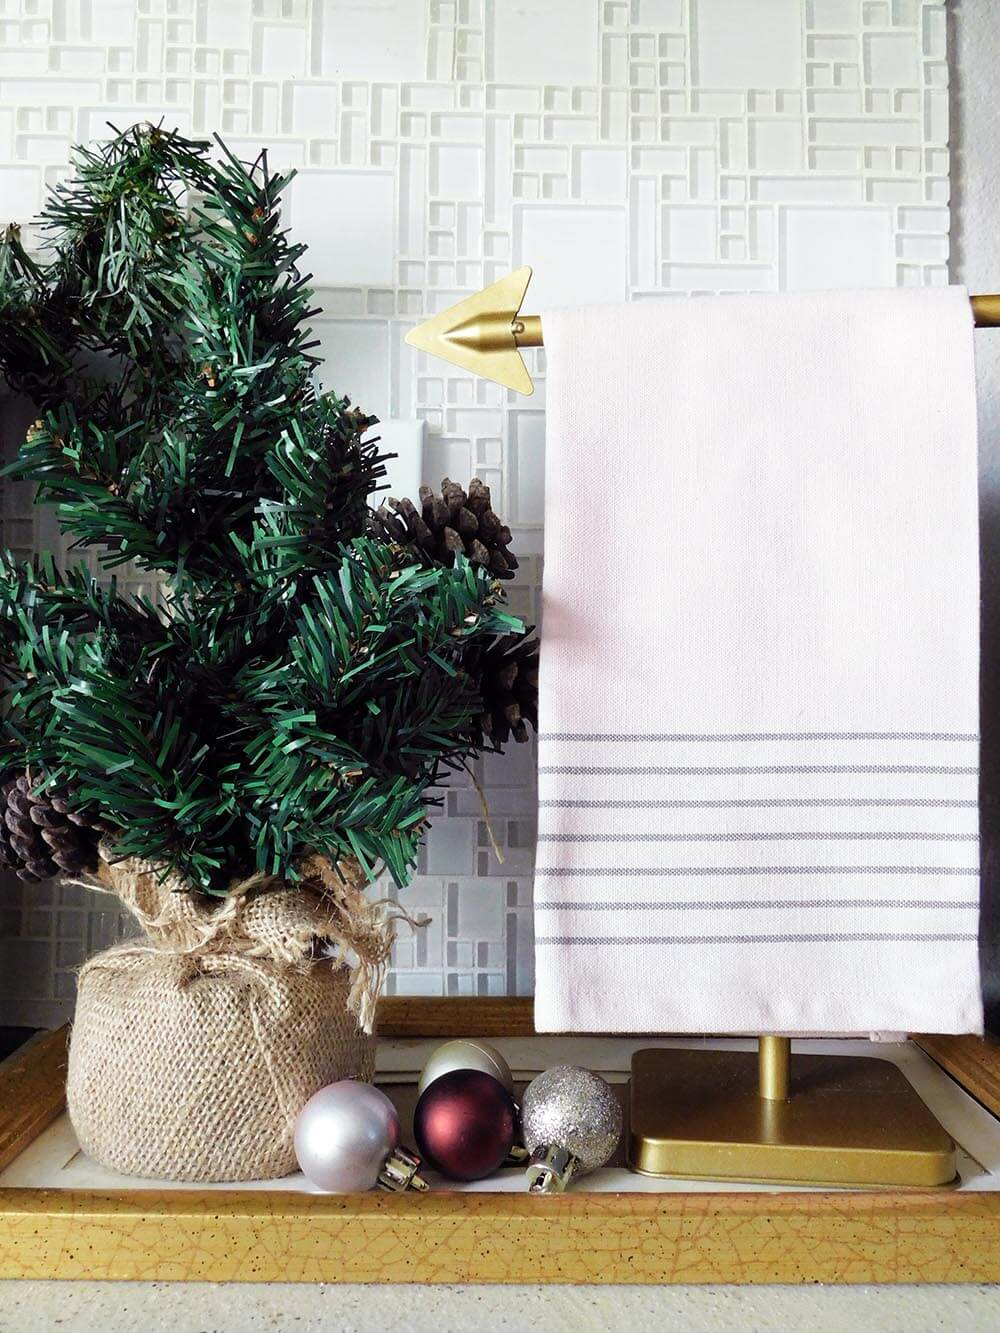 Ikea blush kitchen towel and mini Christmas tree #Christmasdecor